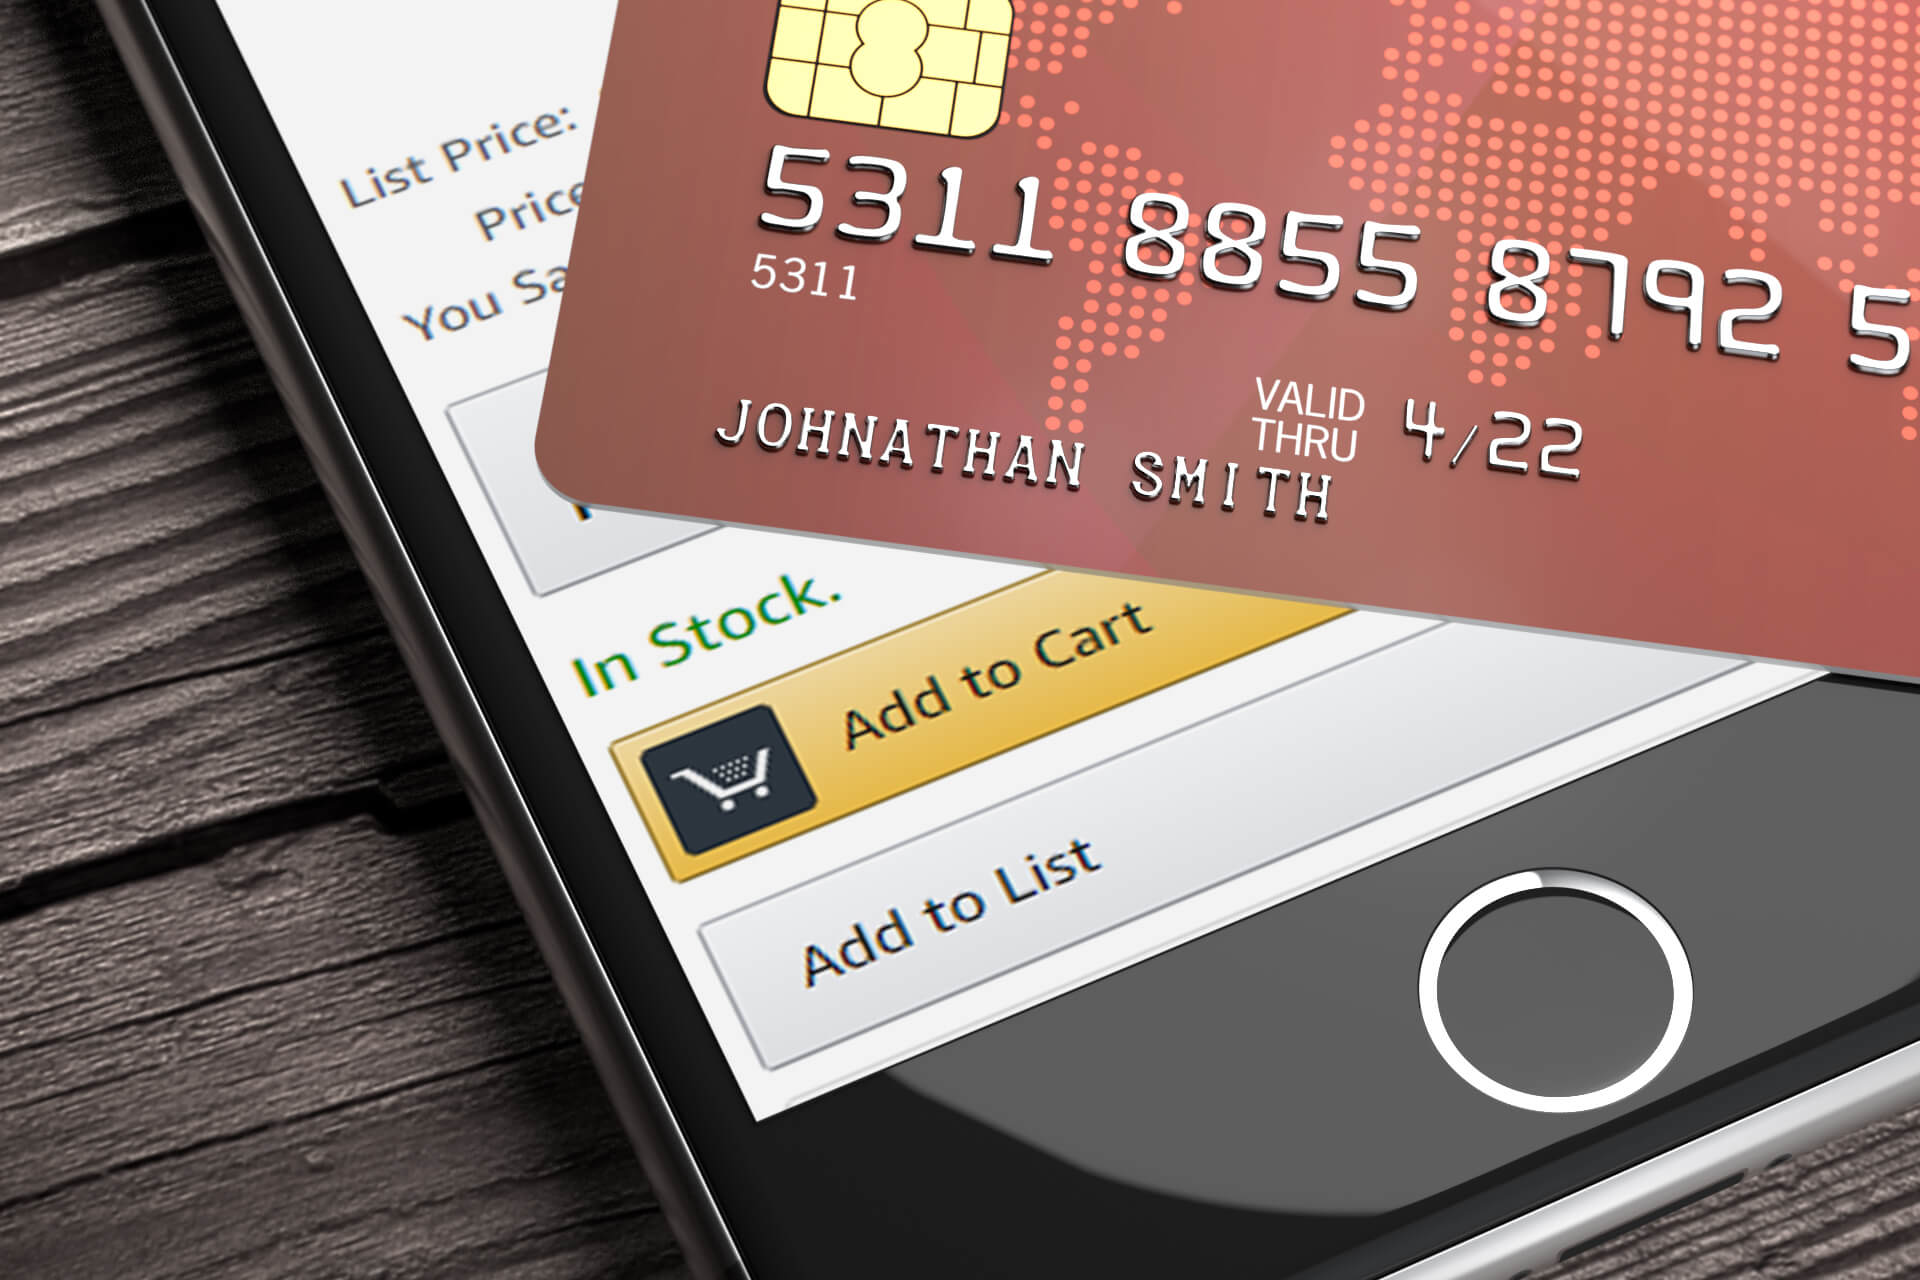 Real Credit Card Numbers 2021 With Security Code